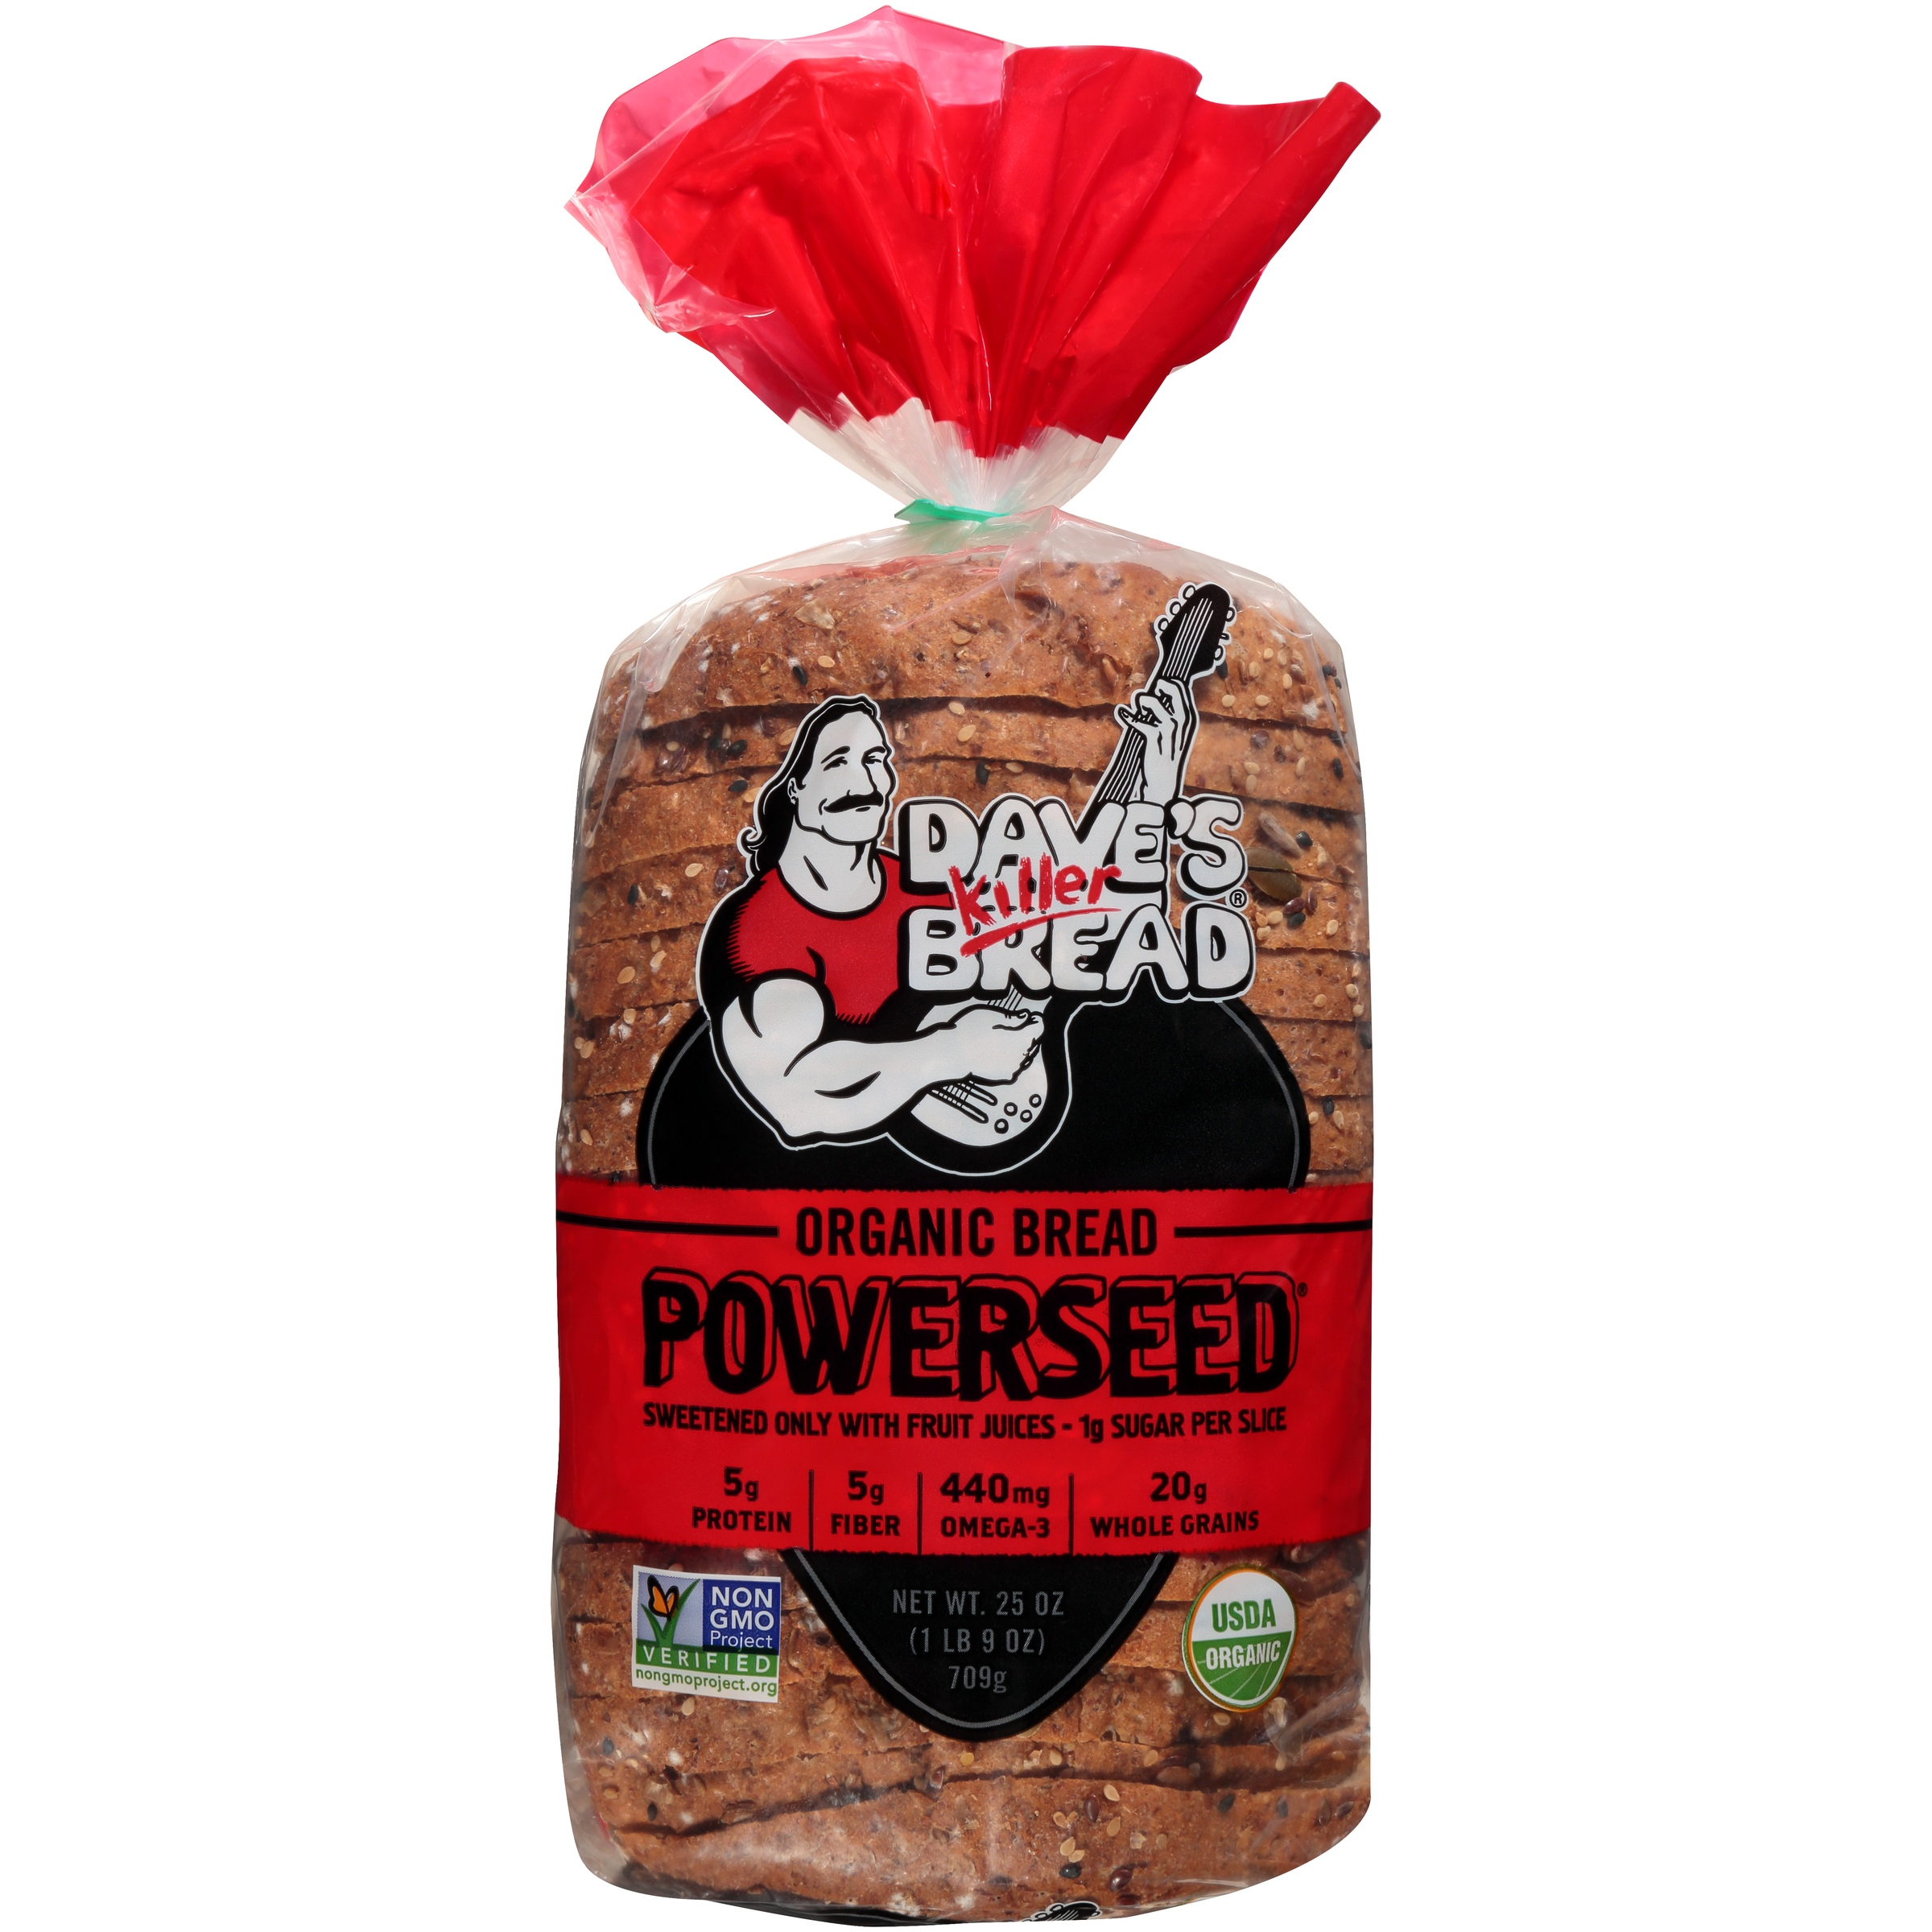 Dave's Killer Bread® Powerseed® Organic Bread 25 oz. Loaf